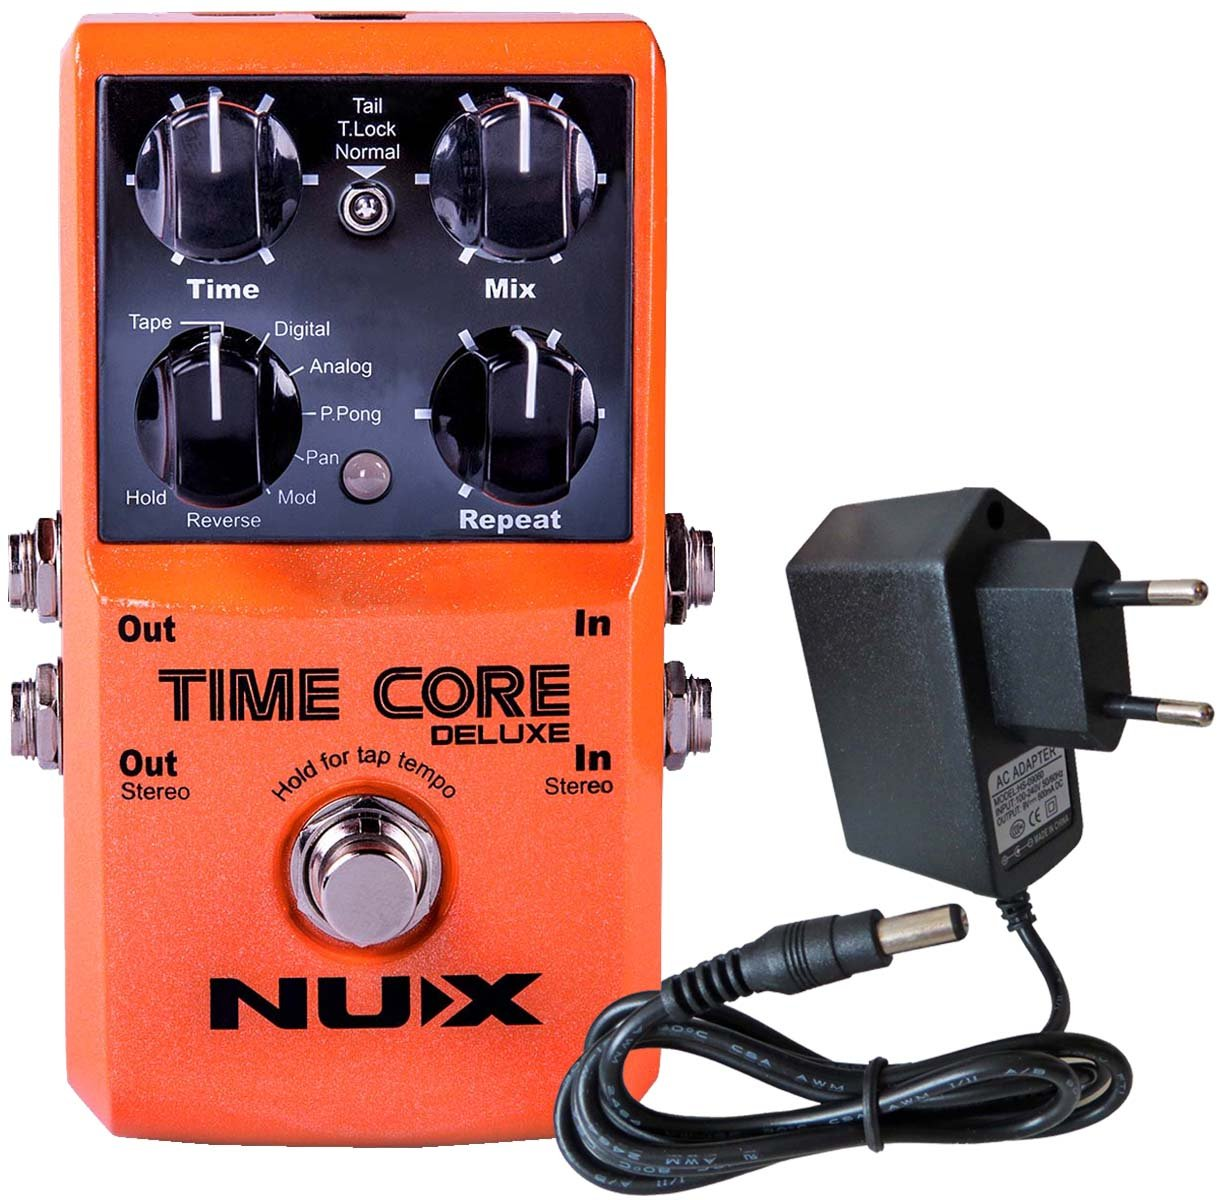 NUX Time Core DELUXE Multi Delay Pedal 8 Delays und Looper Funktion + KEEPDRUM 9V Netzteil